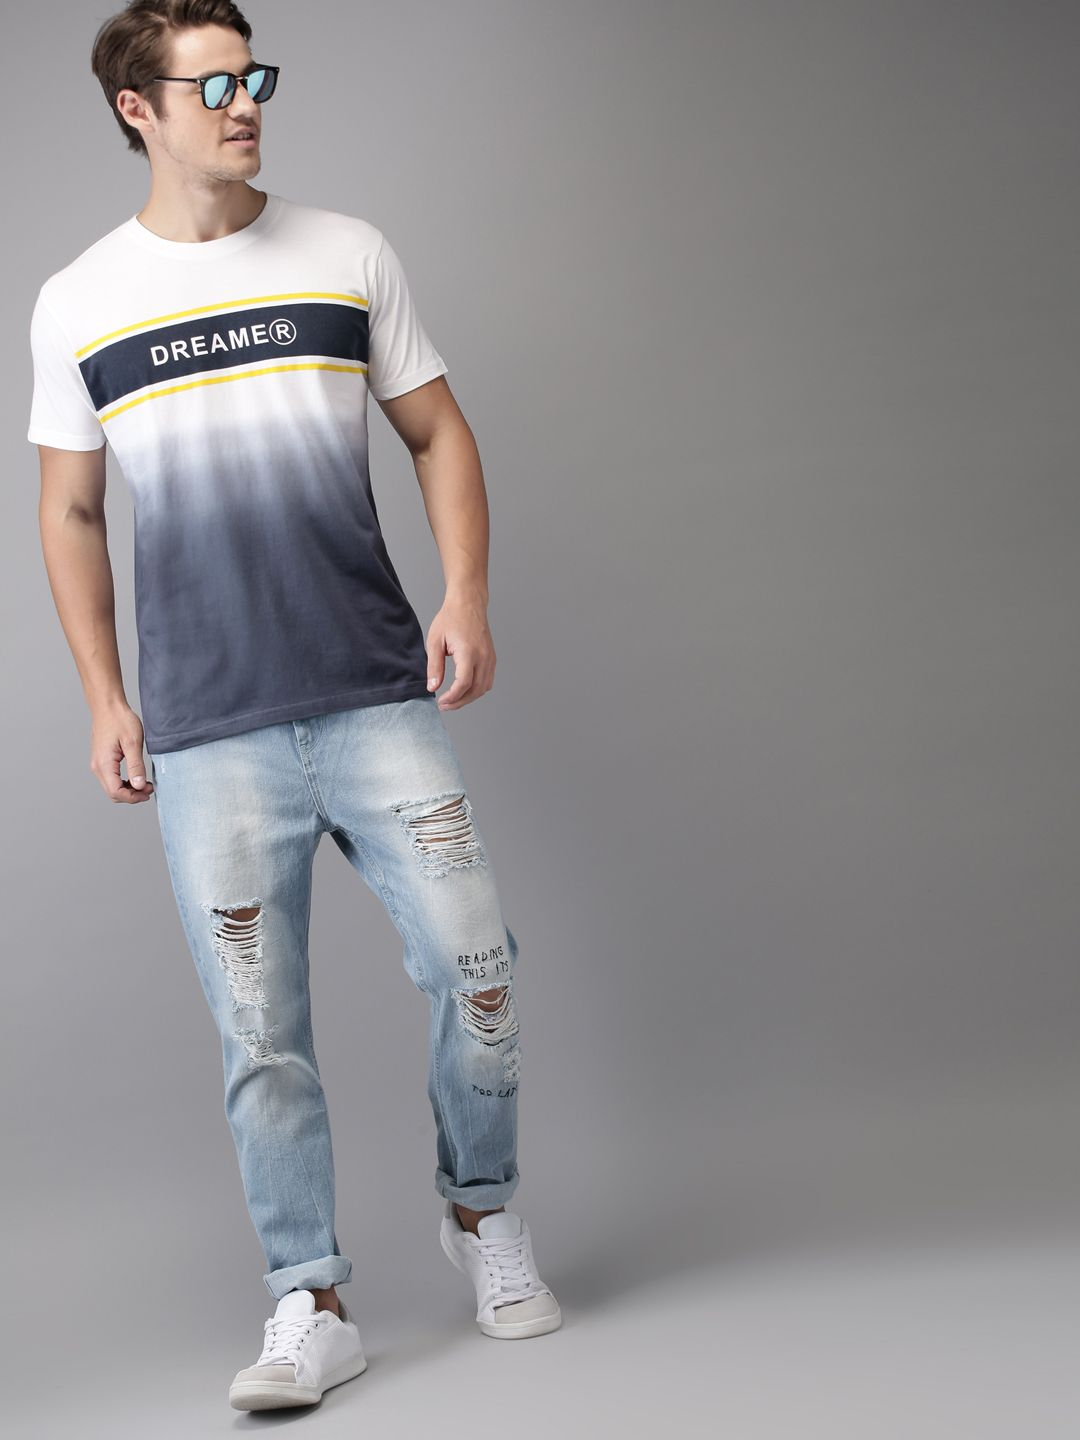 96114025fc2 Denim Jeans Shirts Myntra – EDGE Engineering and Consulting Limited